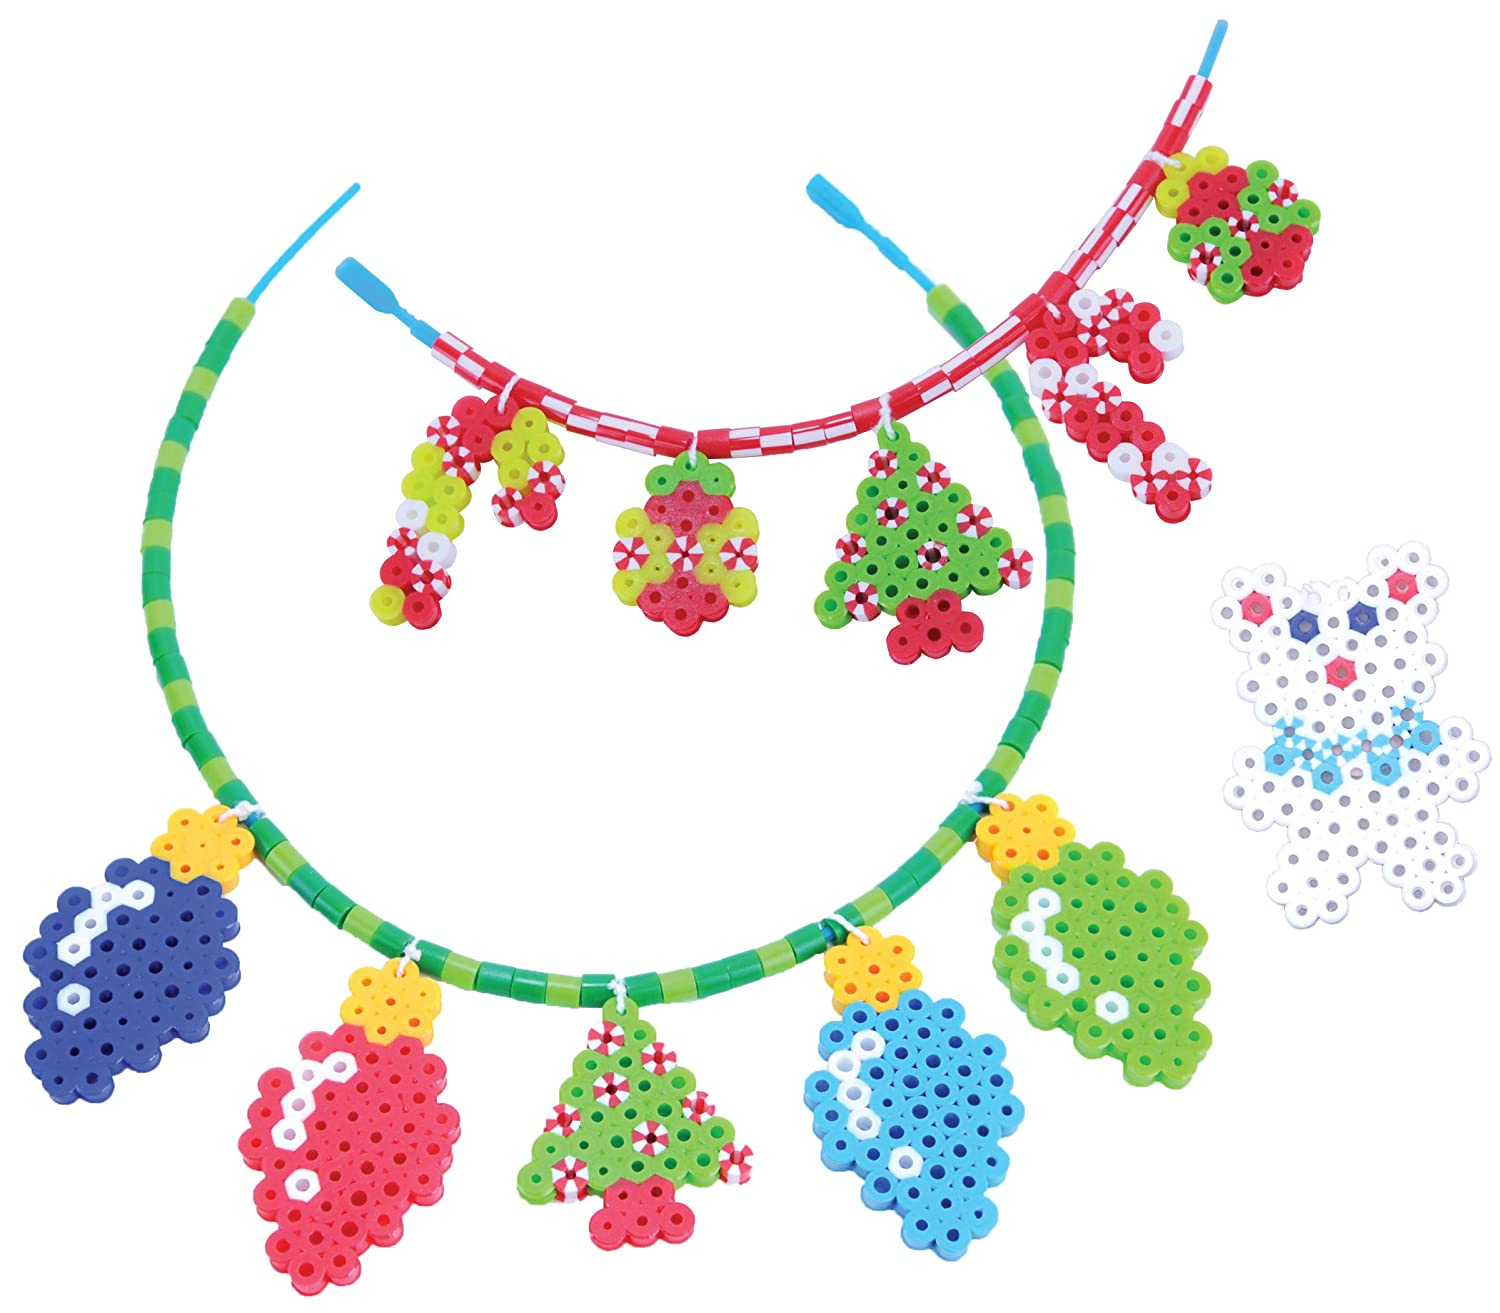 Festive necklace design made from fused beads with Christmas tree and ornaments